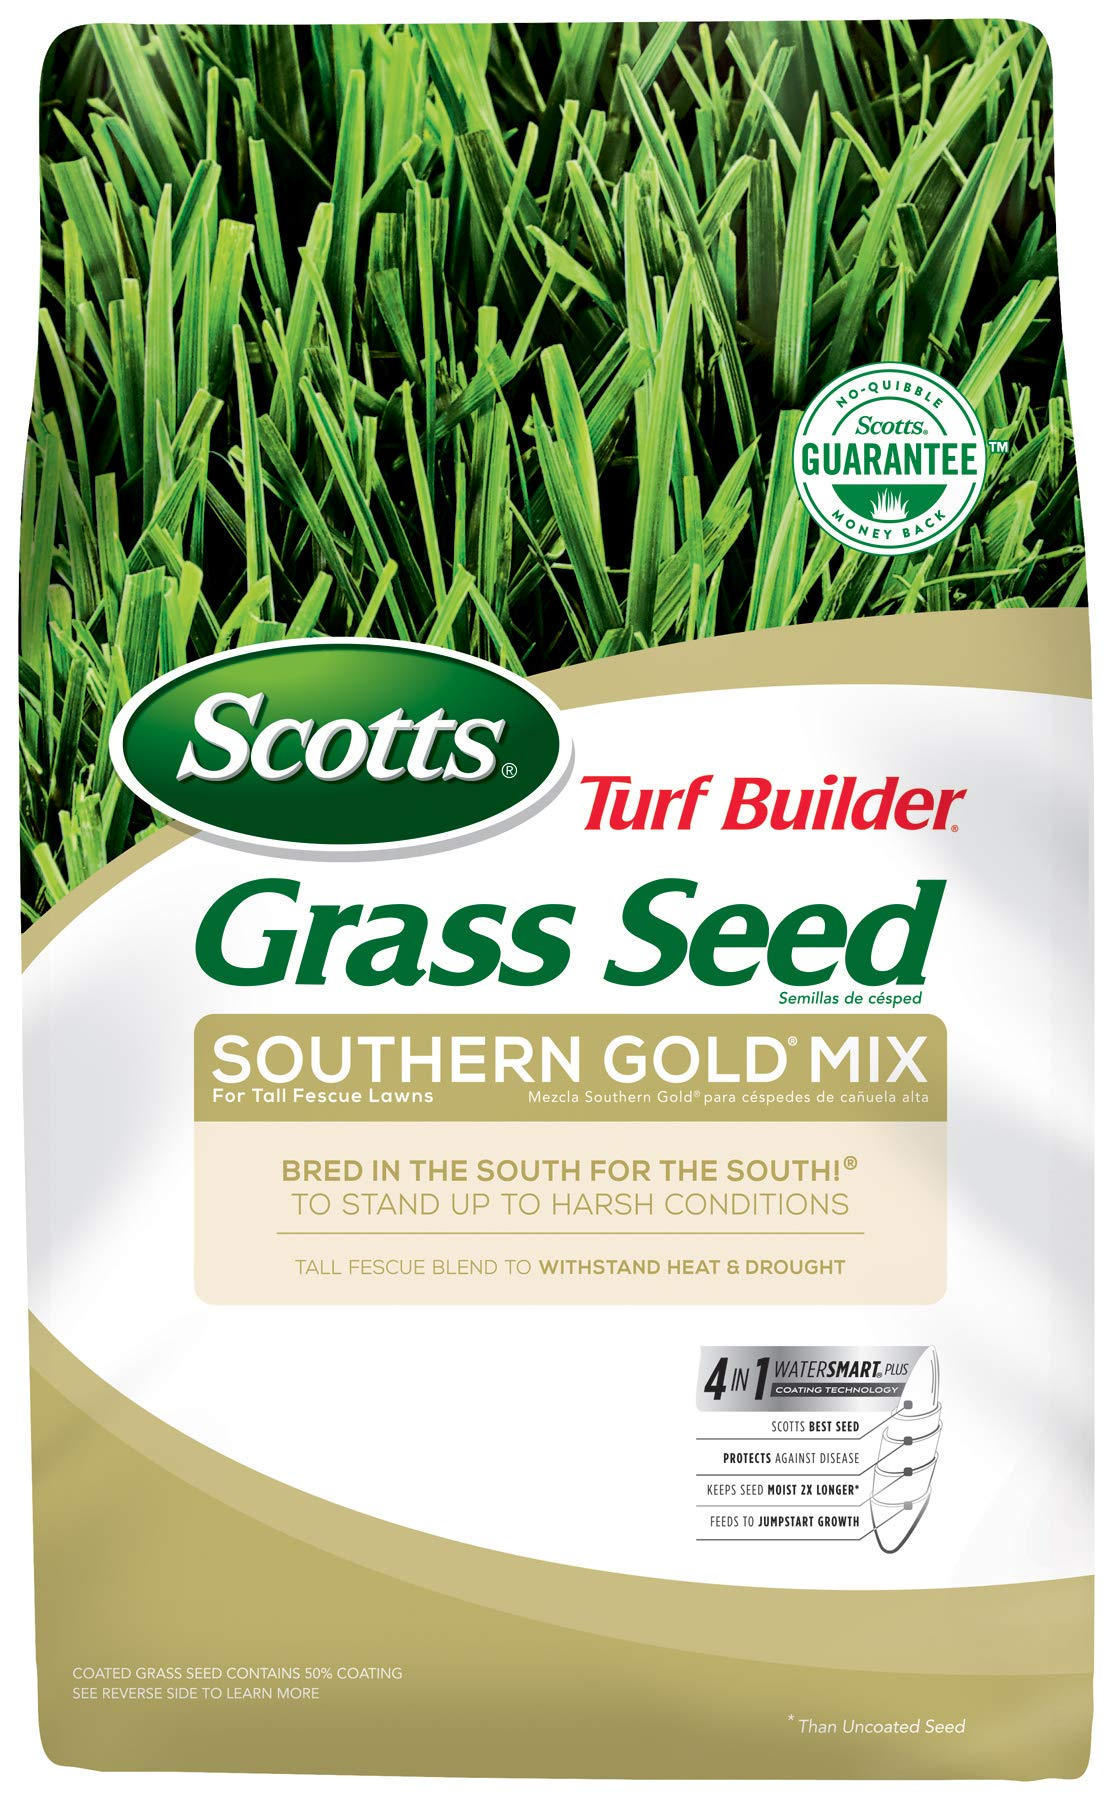 Scotts Turf Builder Grass Seed - Southern Gold Mix for Tall Fescue Lawns, 20-Pound (Sold in select Southern states)